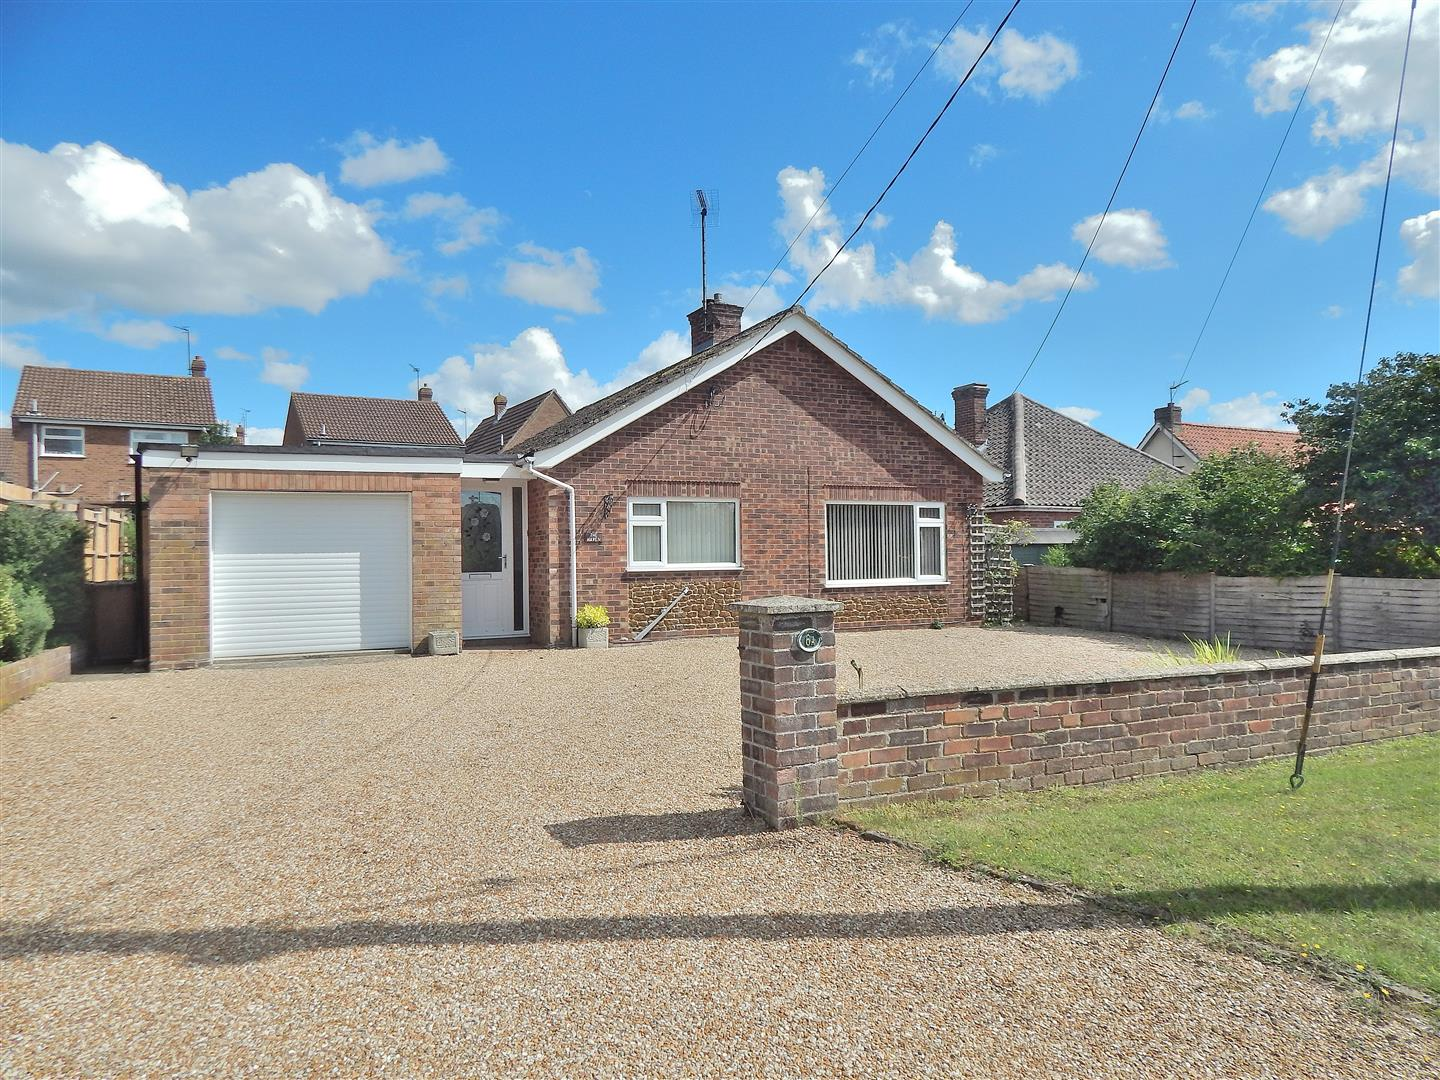 3 bed detached bungalow for sale in King's Lynn, PE31 6HT 0